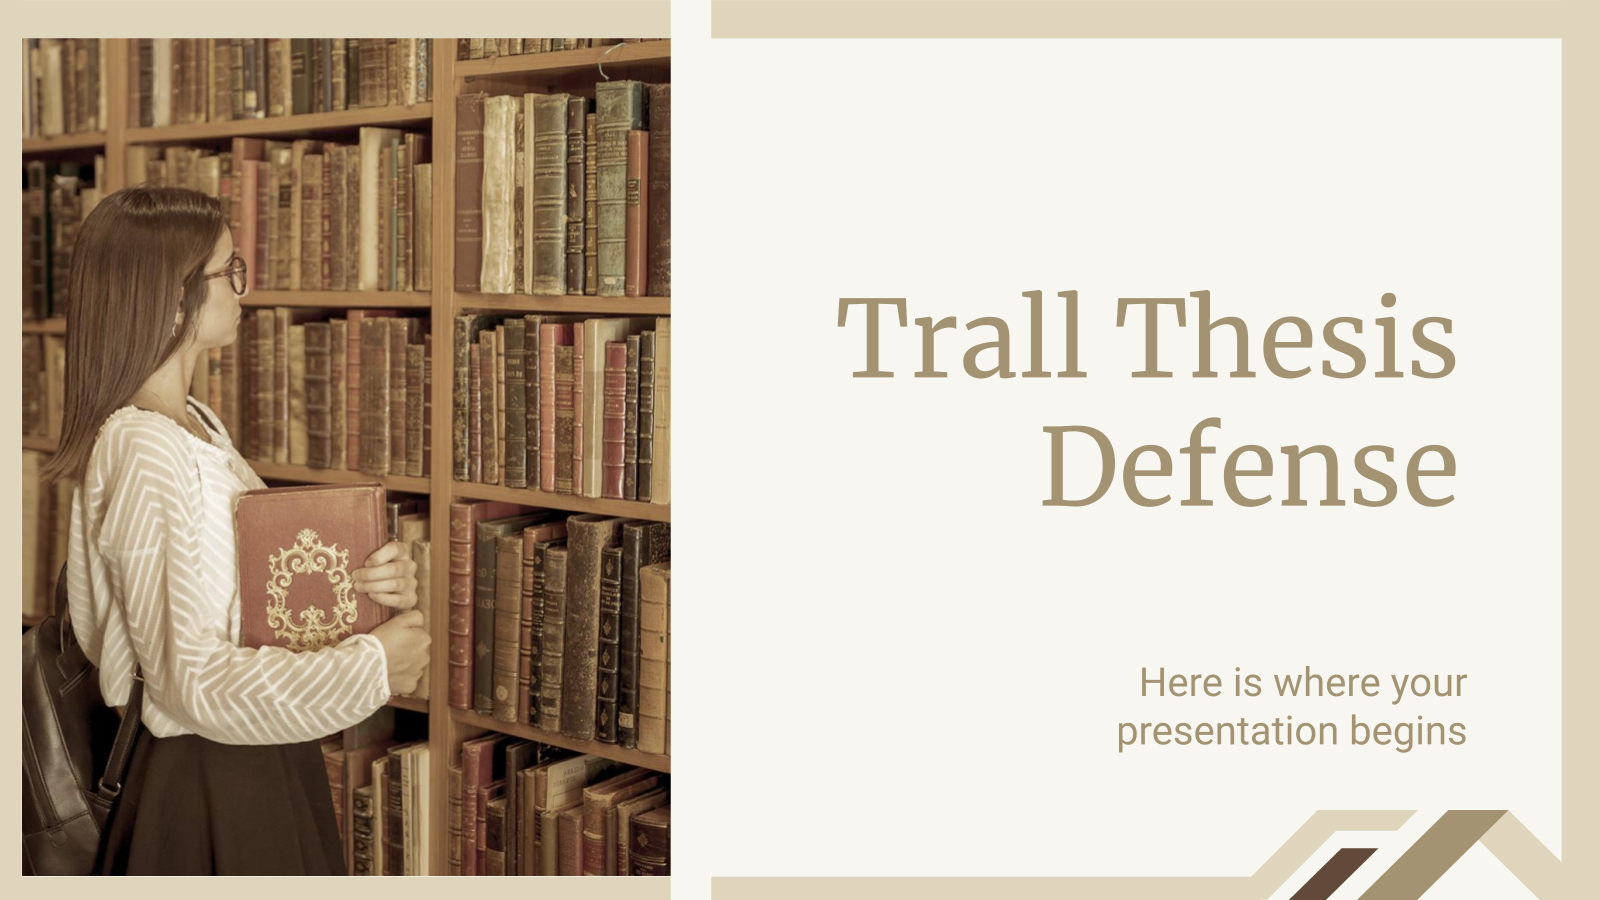 Trall Thesis Defense presentation template